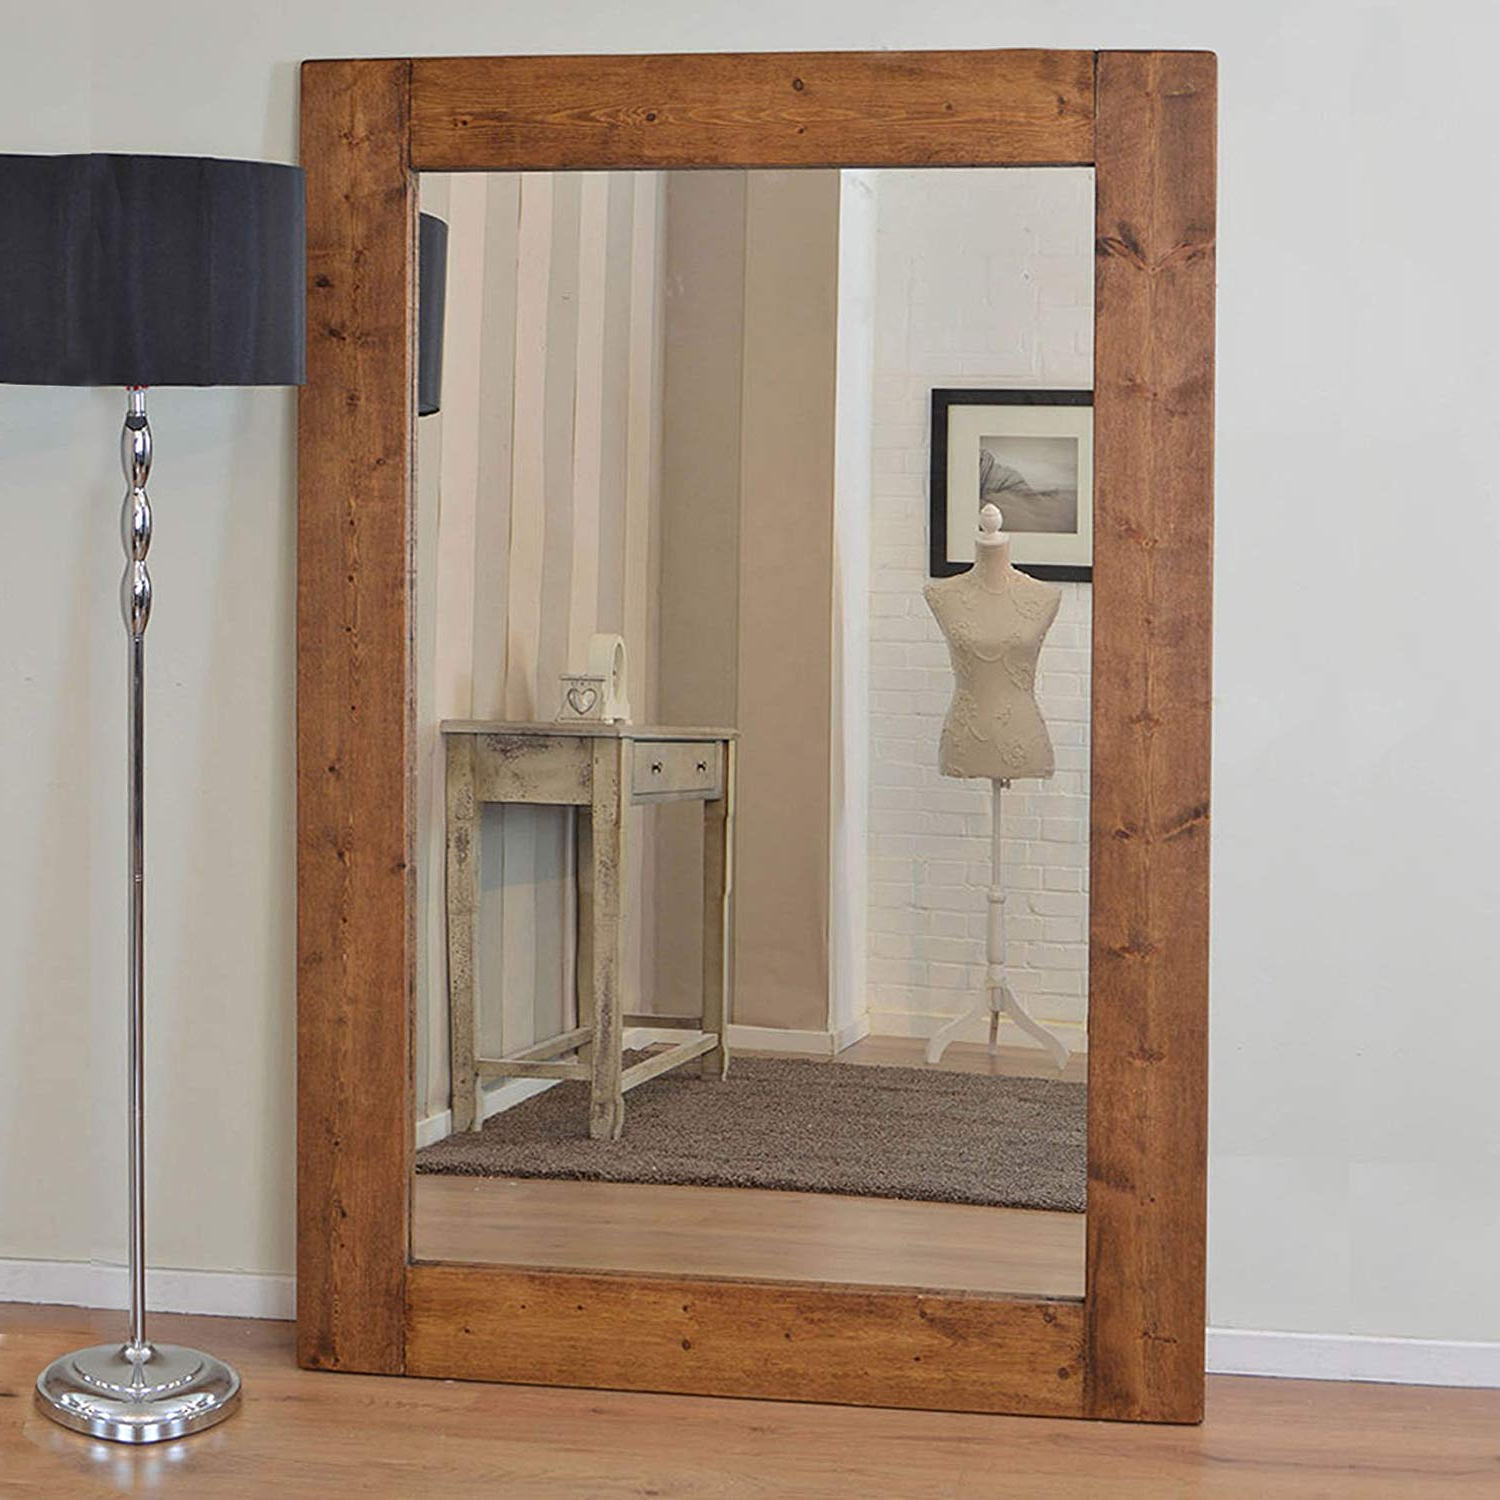 Wood Wall Mirrors With Most Recent Large Solid Wood Wall Mirror 6Ft X 4Ft (183Cm X 122Cm) (View 20 of 20)